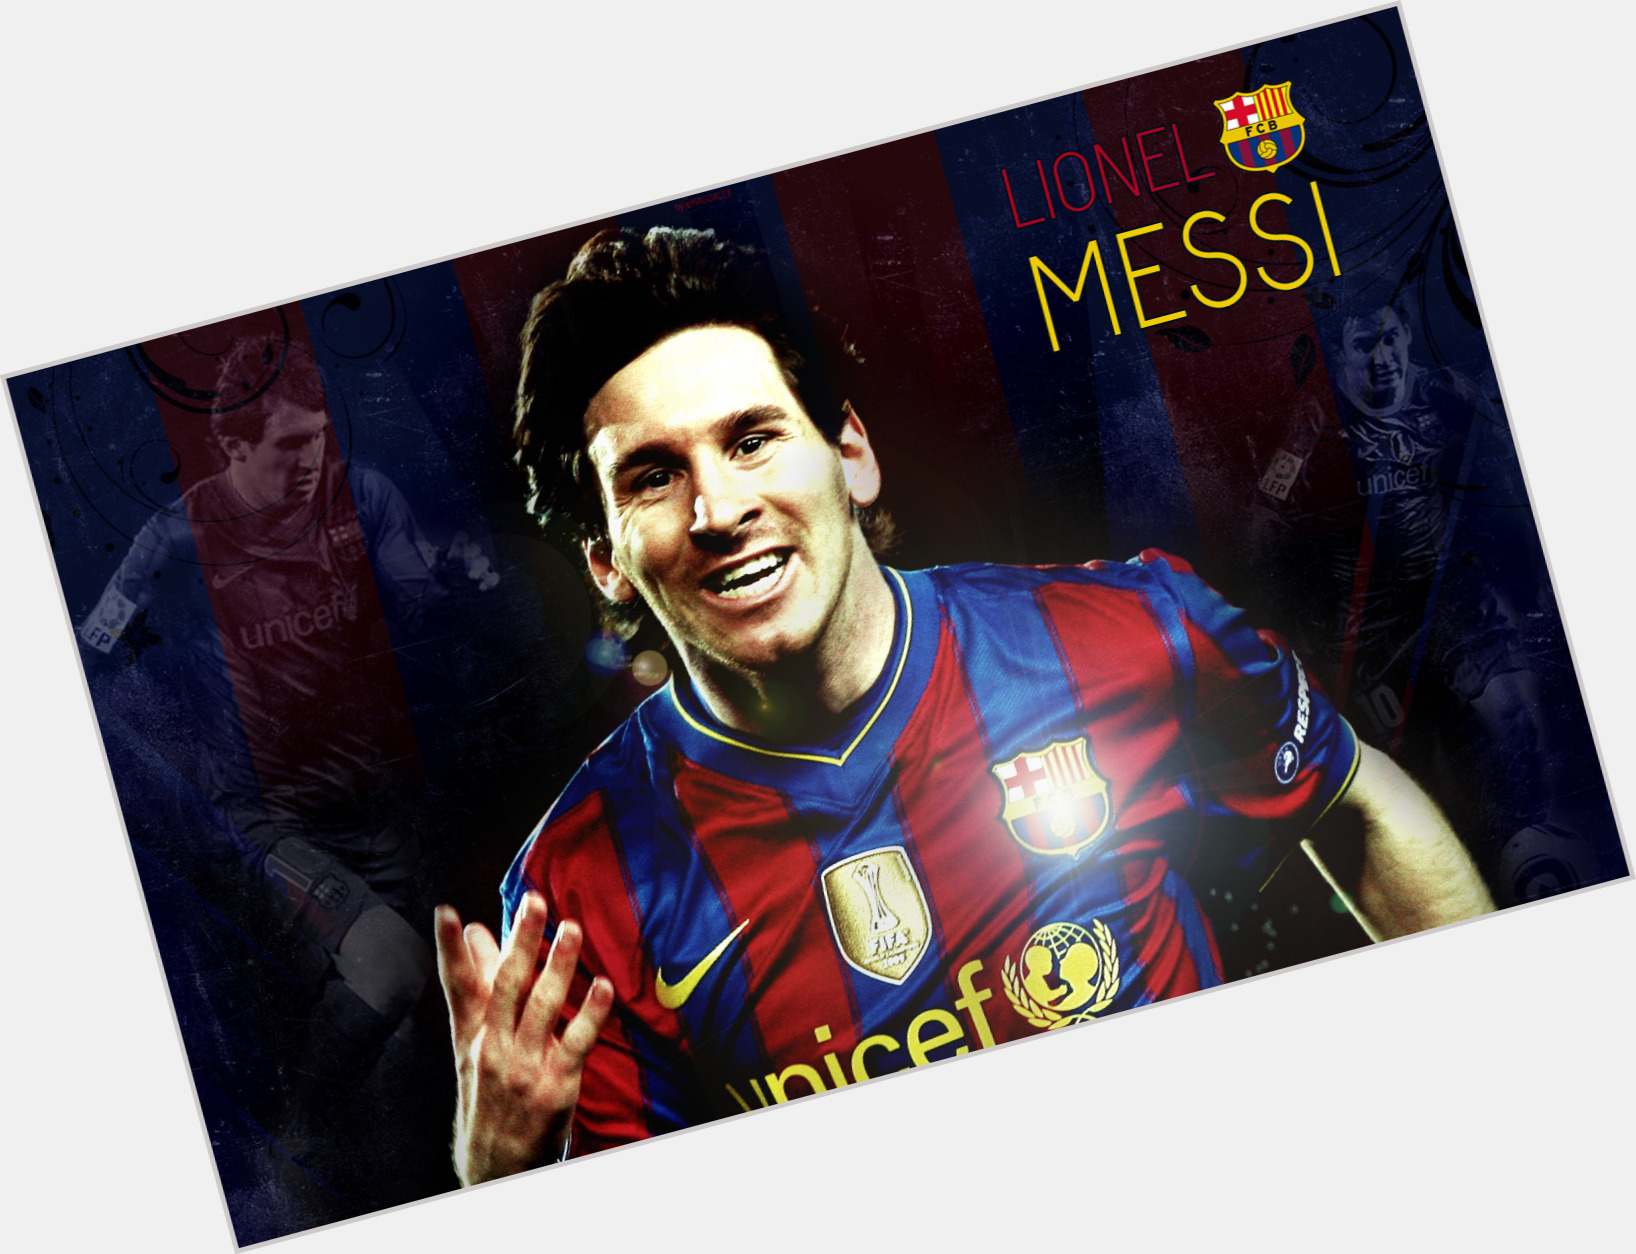 lionel messi shooting 1.jpg